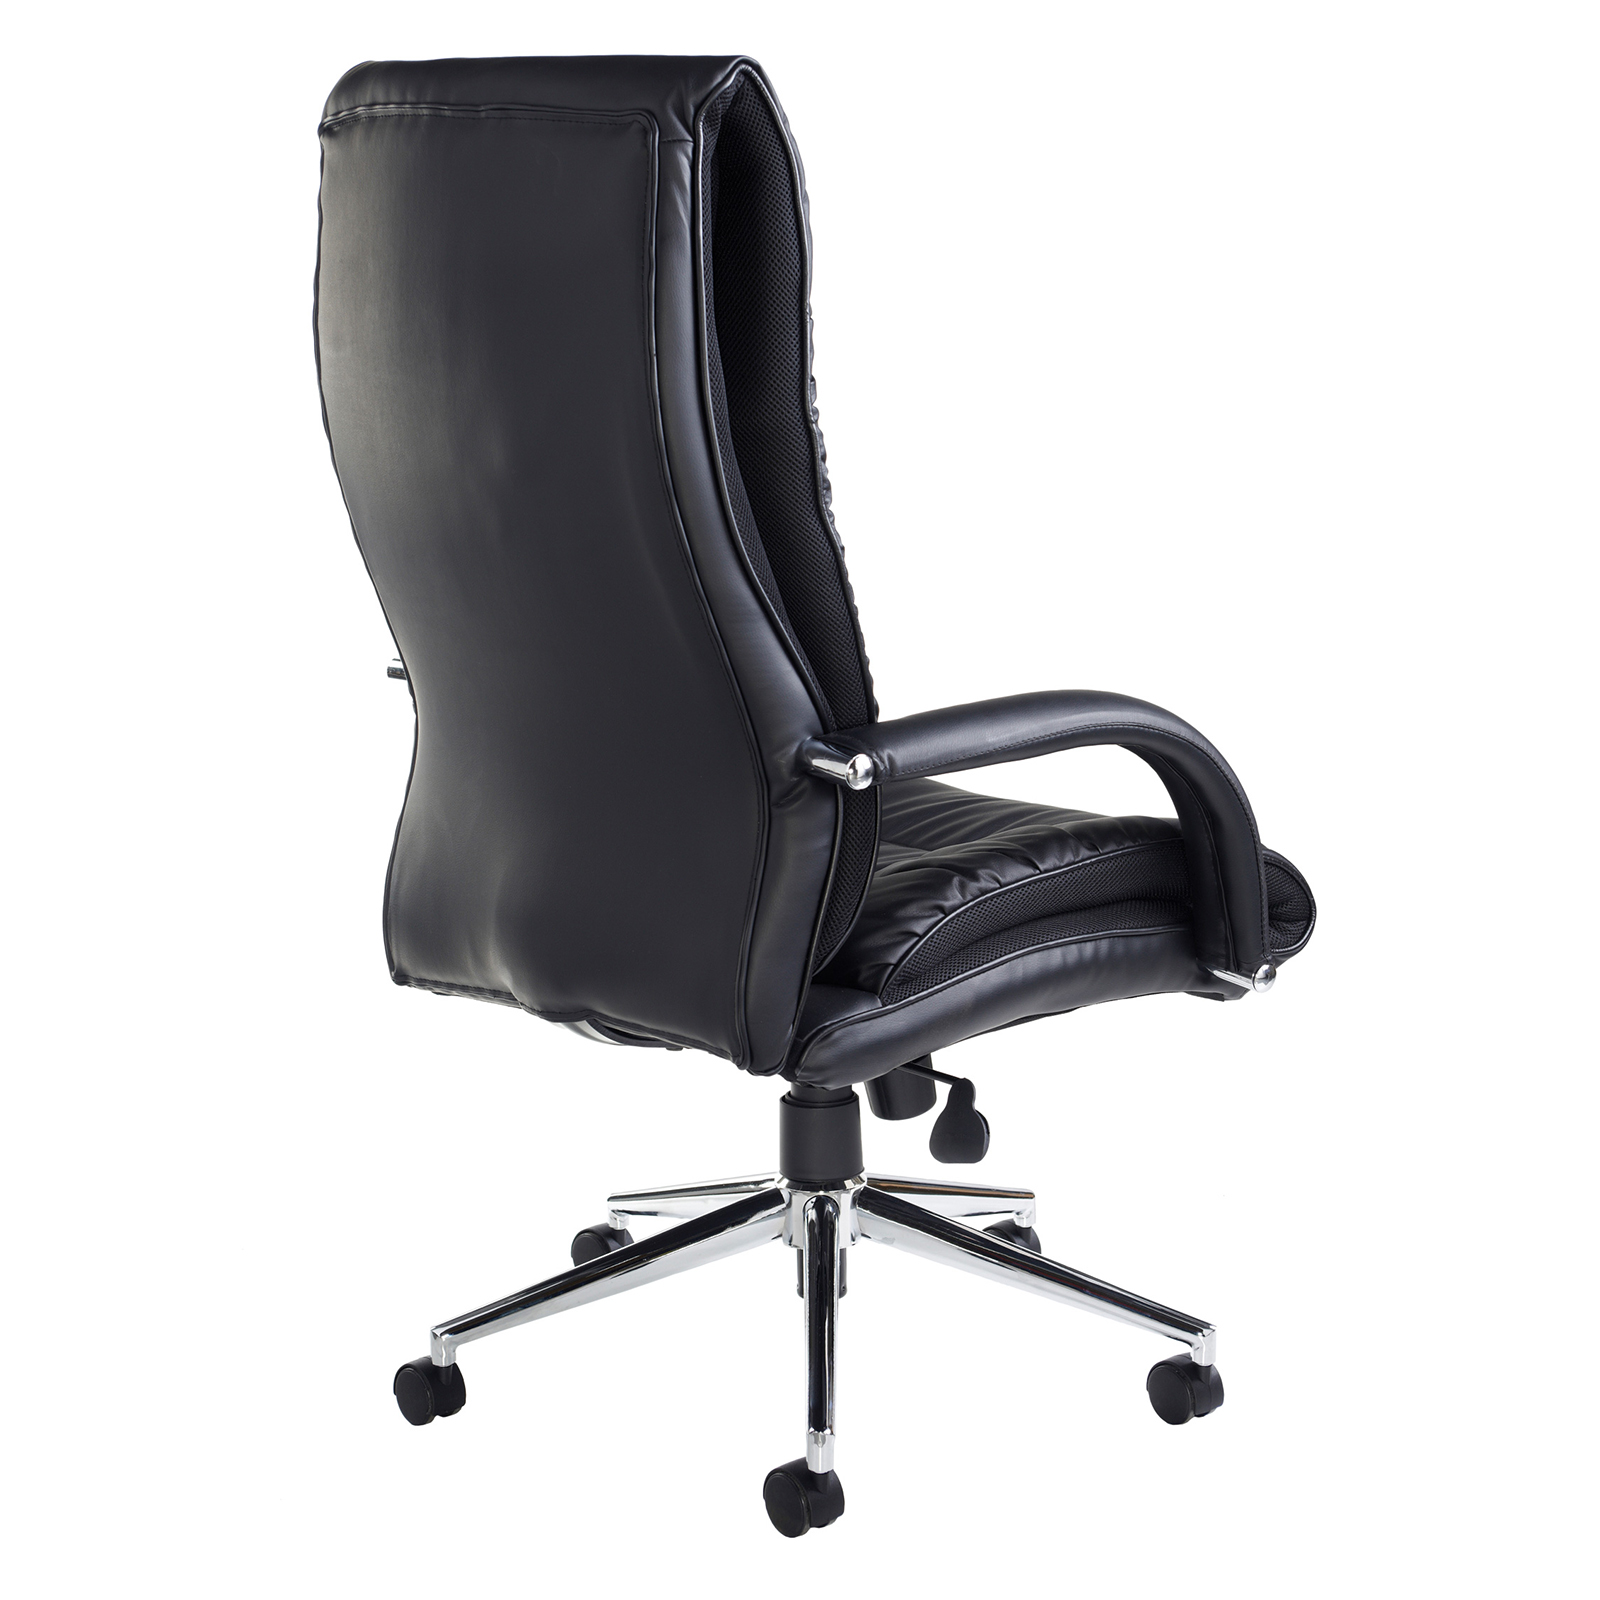 Derby high back executive chair - black faux leather